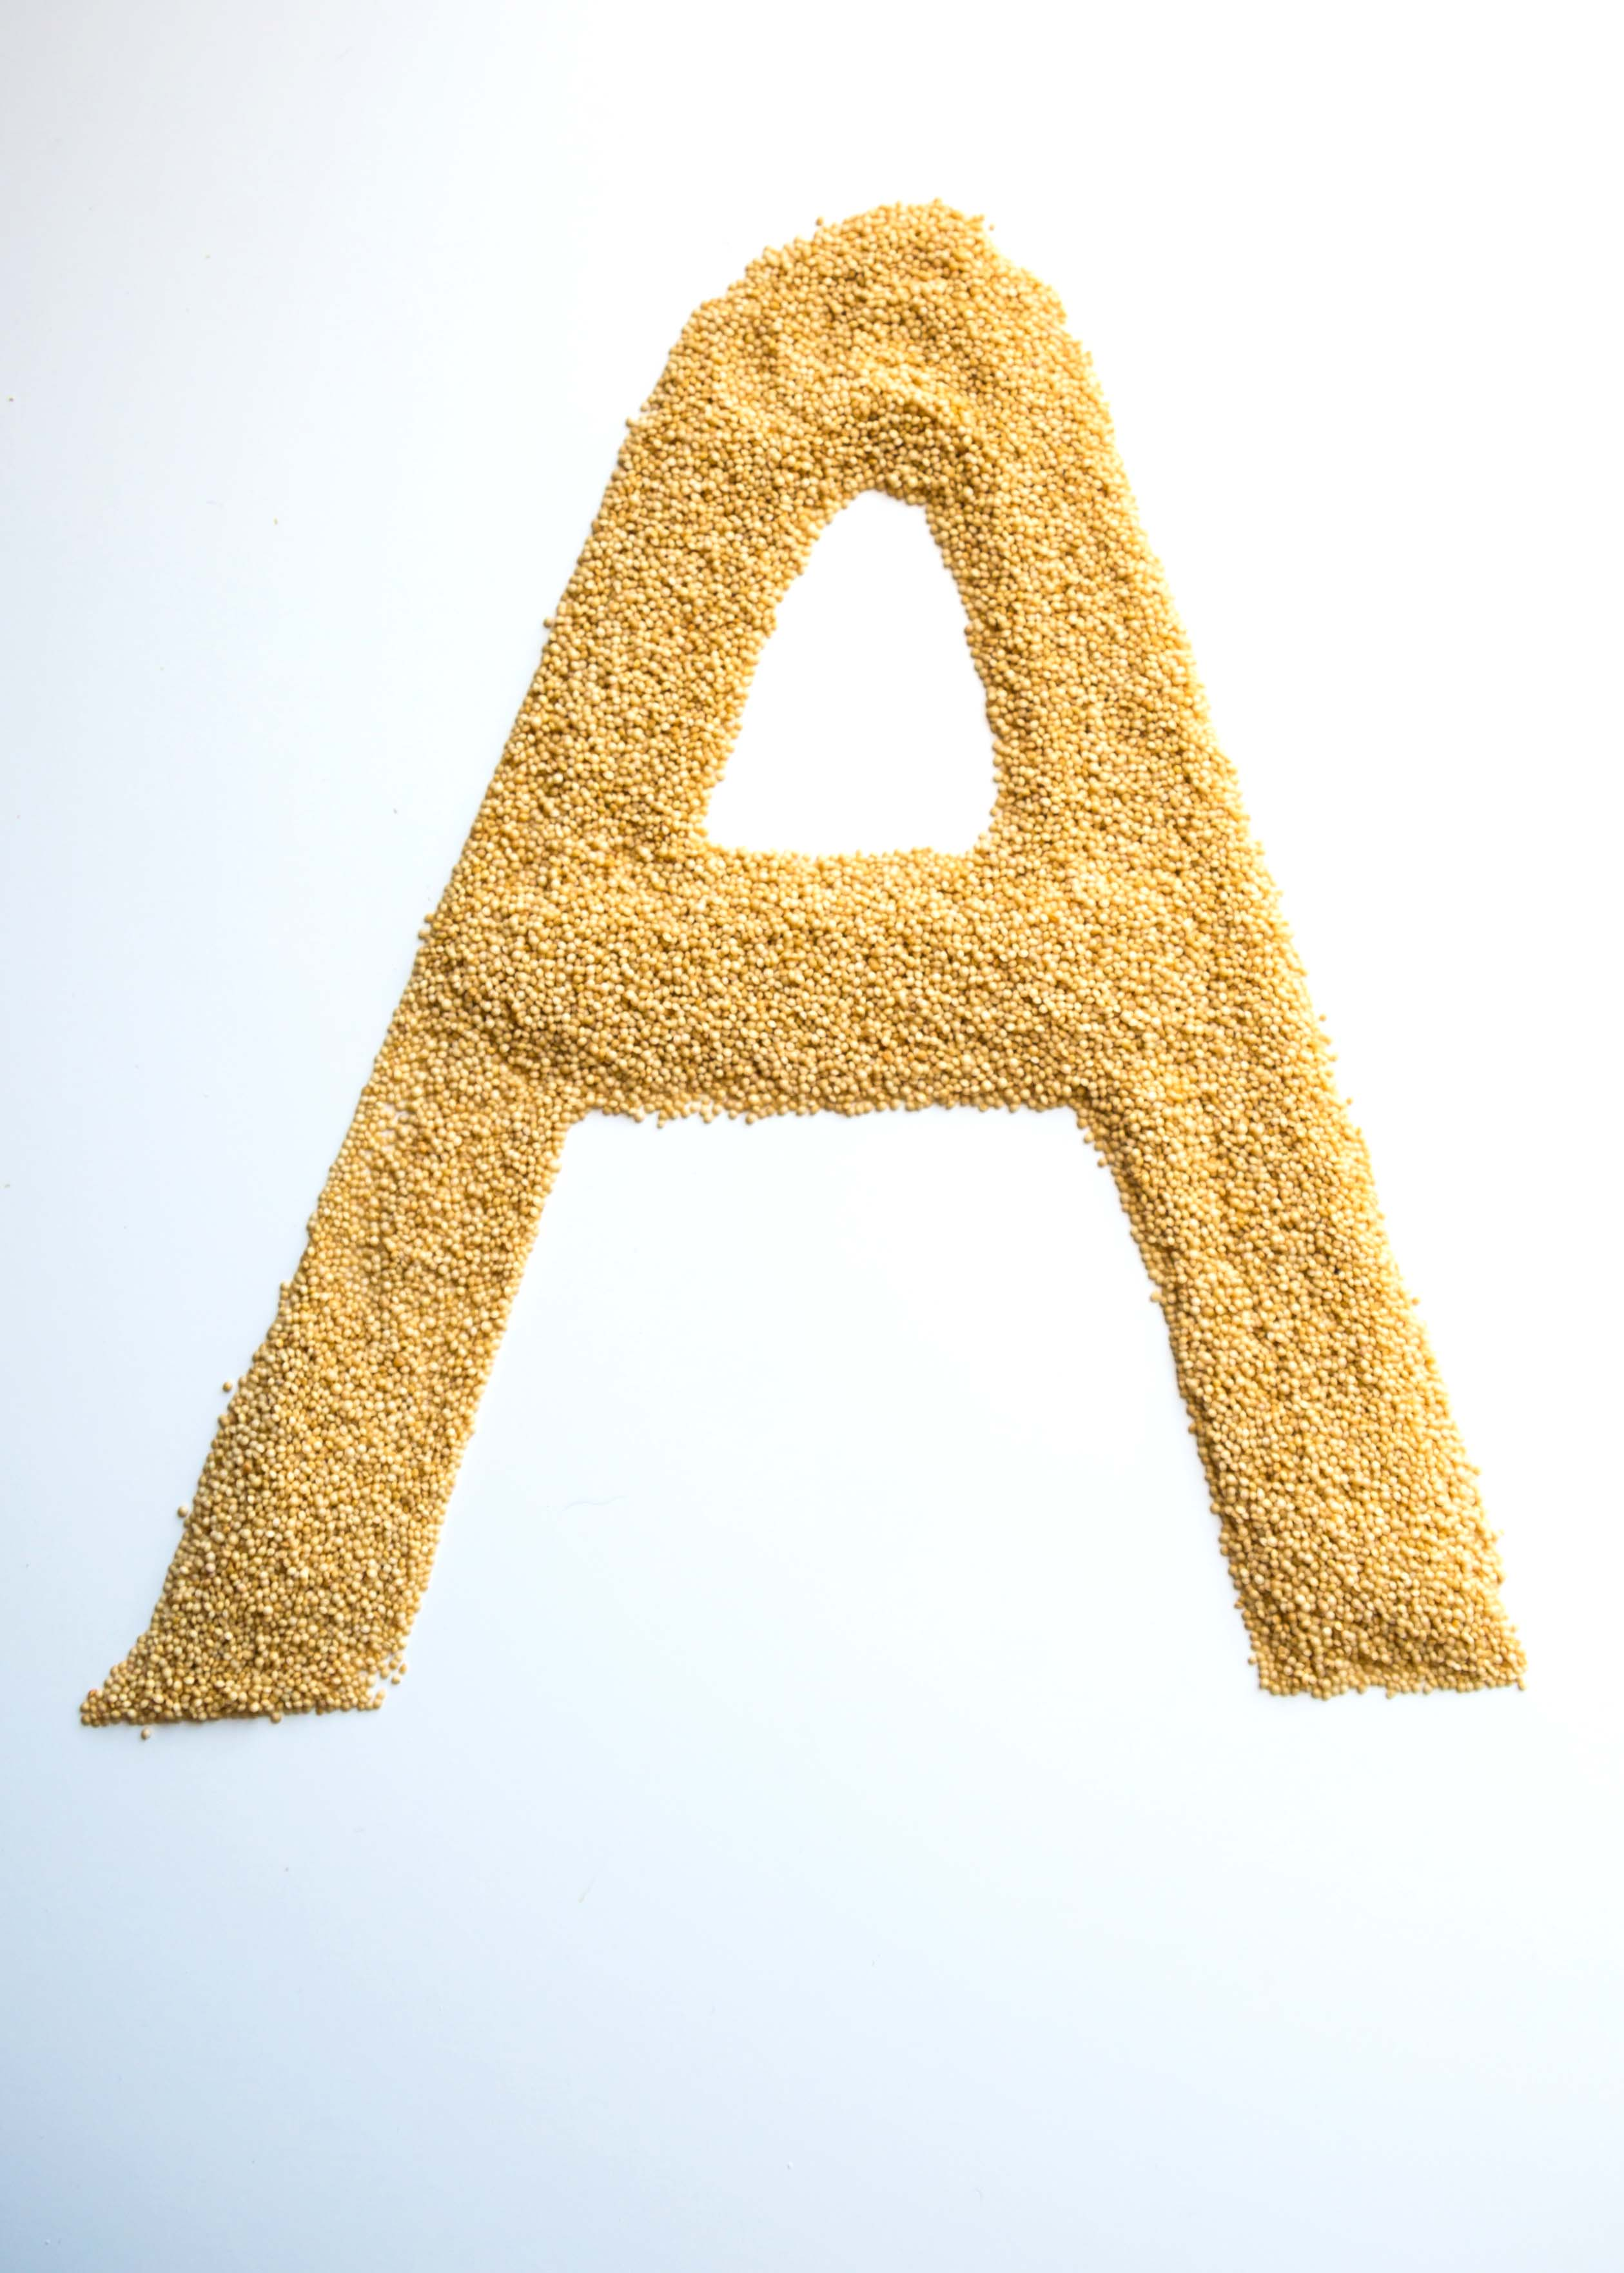 When it comes to adding in a protein boost, you can't beat cooking amaranth. It's a less known whole grain in the United States but how to cook amaranth couldn't be easier.